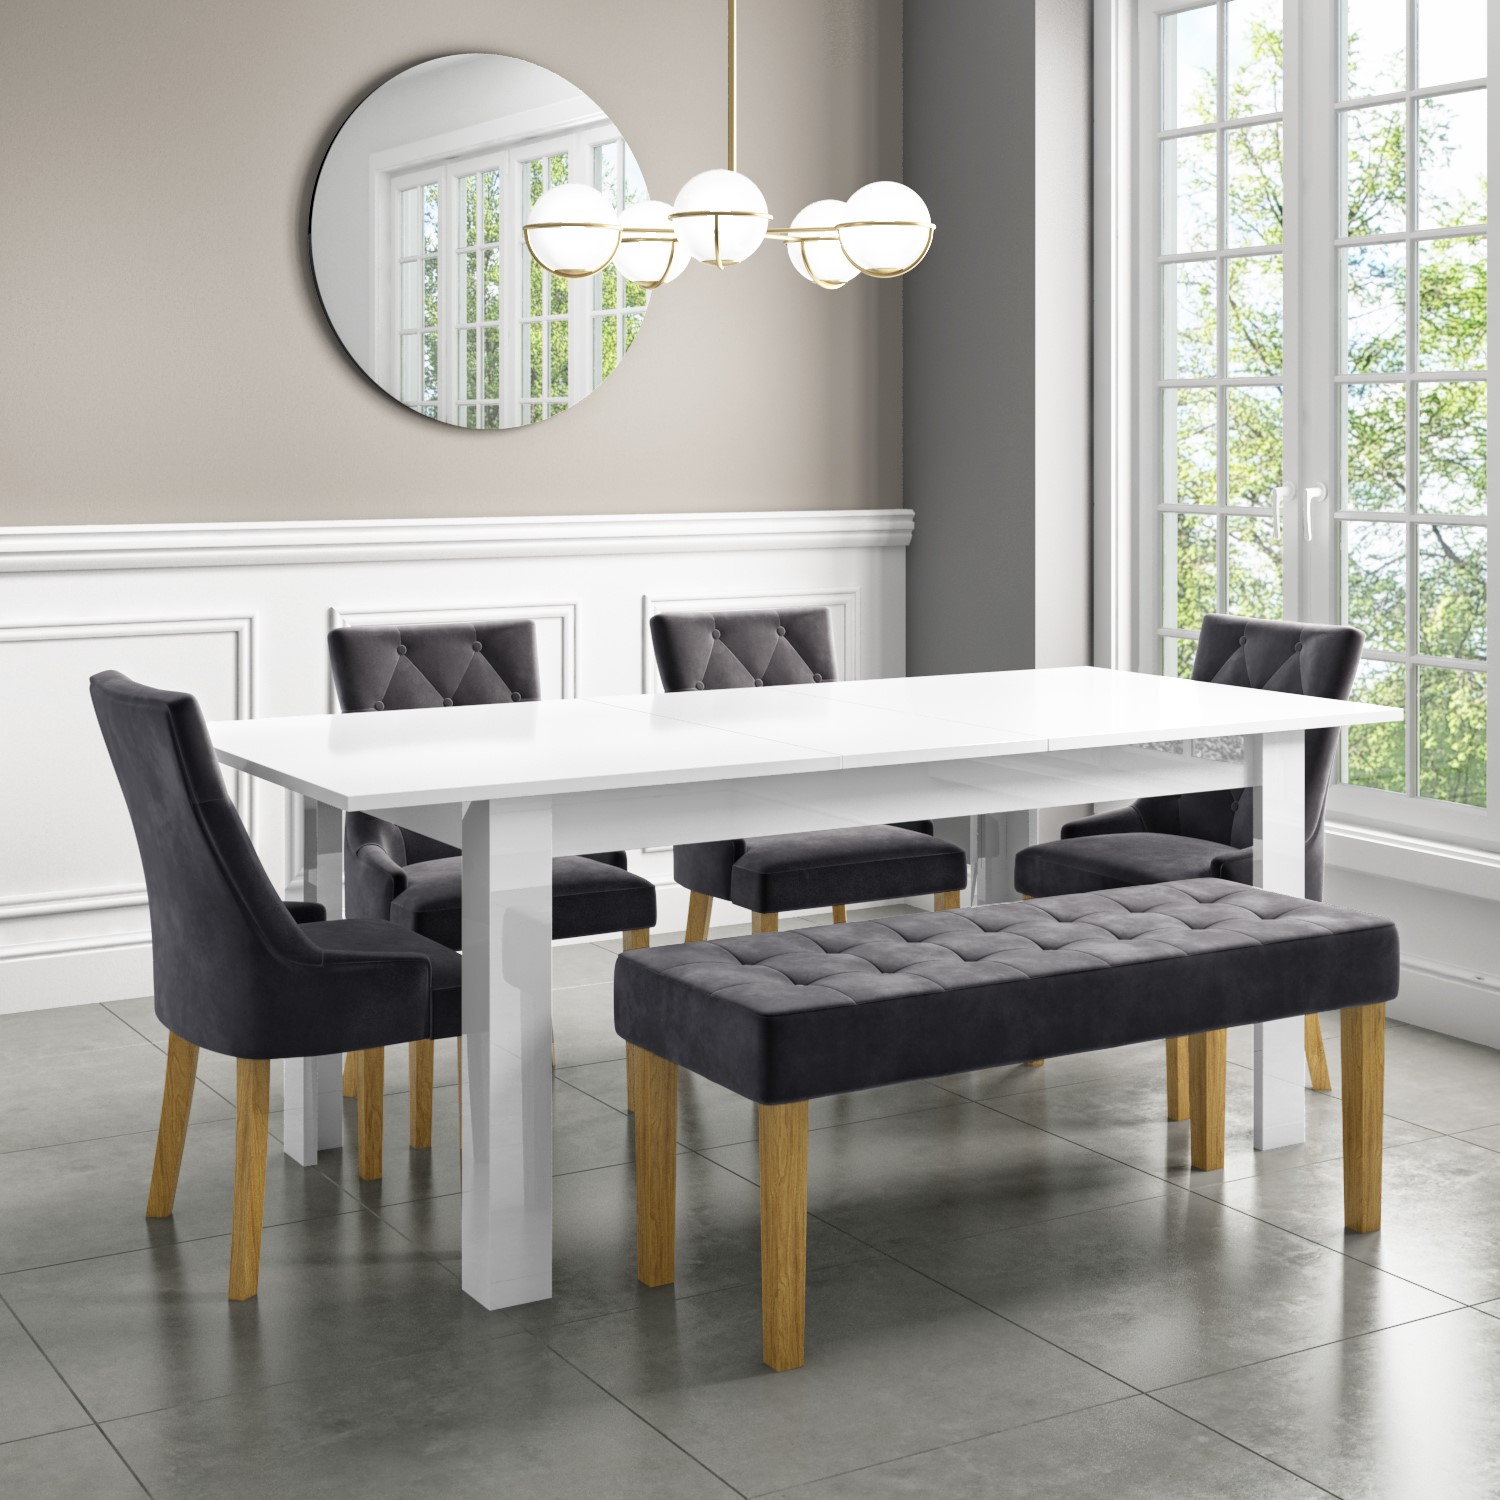 Extendable Dining Table In White High Gloss With 4 Grey Velvet Chairs 1 Bench Vivienne Kaylee Furniture123